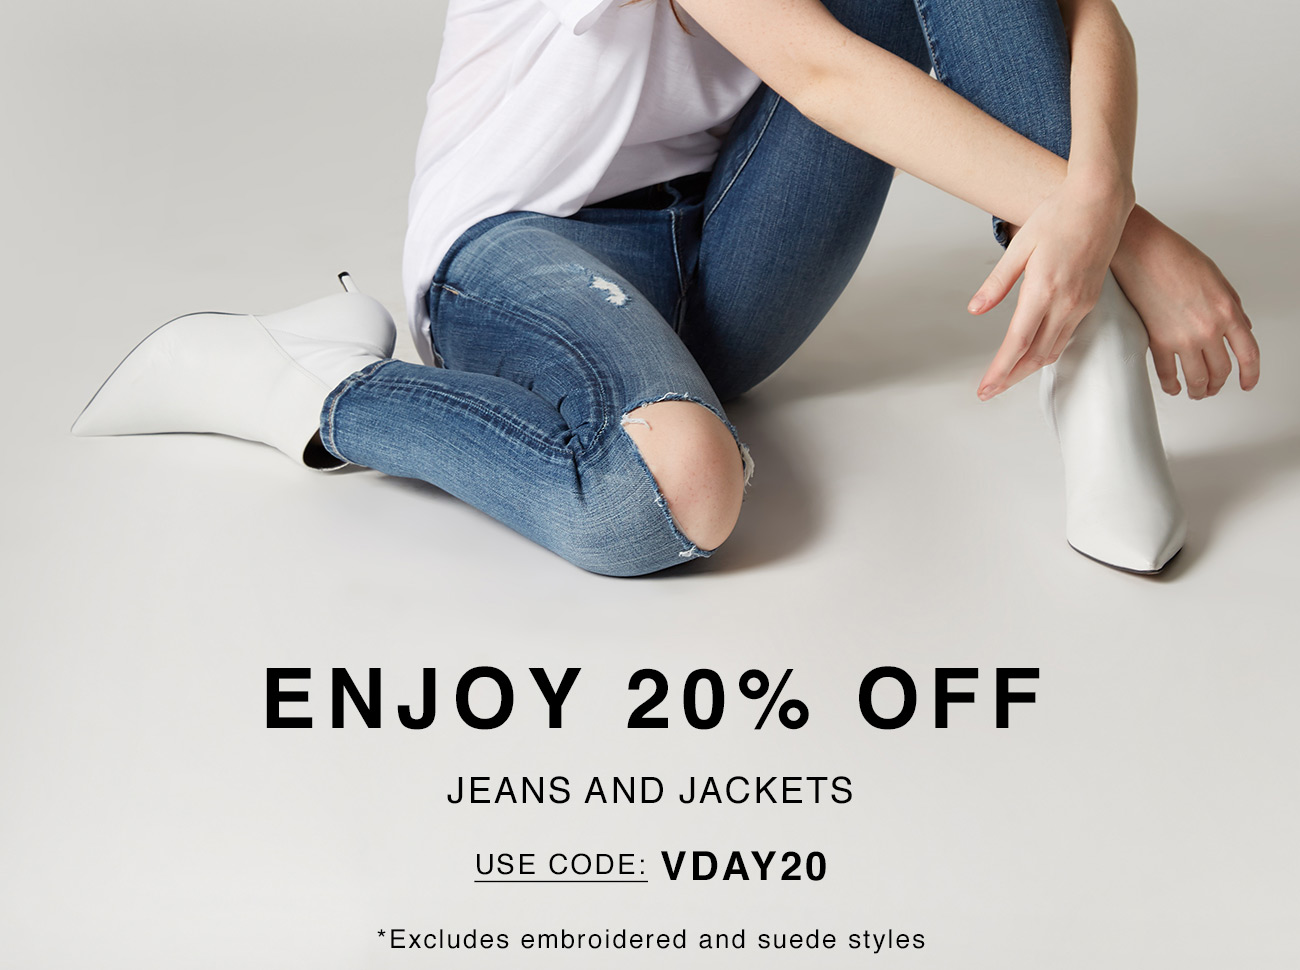 Enjoy 20% Off Jeans and Jackets - use Code: VDAY20